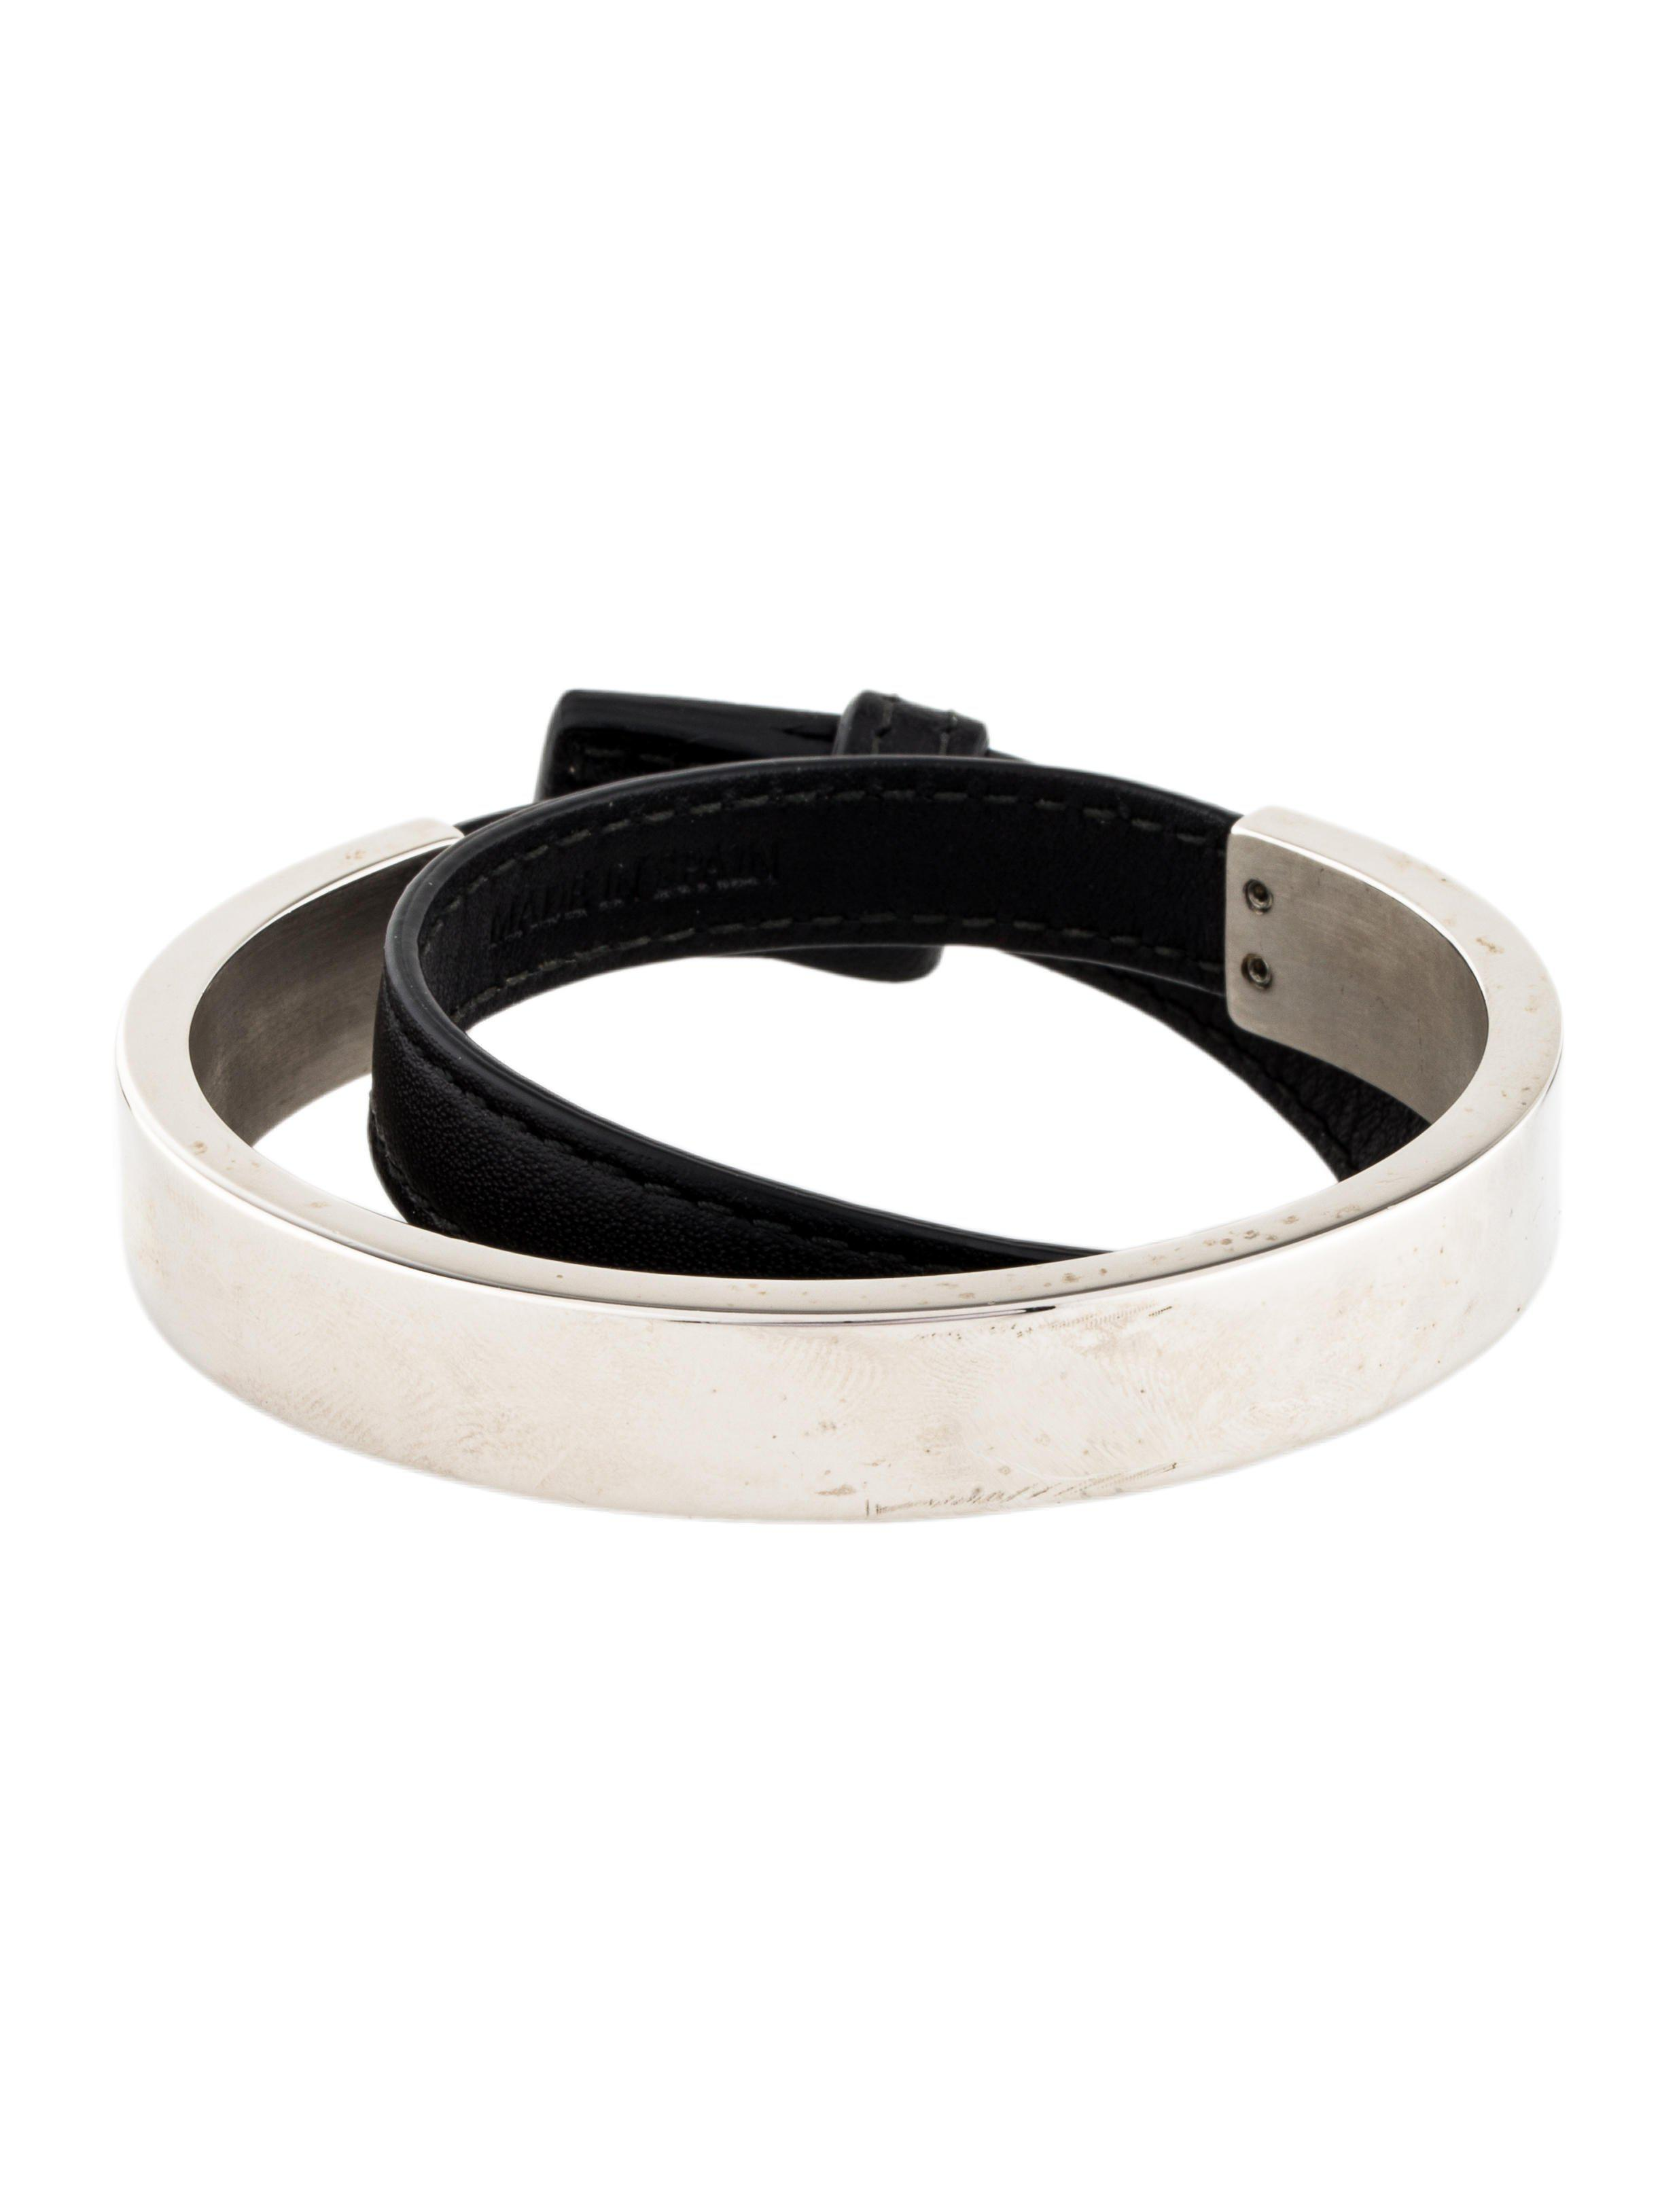 jewelry leather product bangles bracelet silverlust sterling dragon fine bangle and black